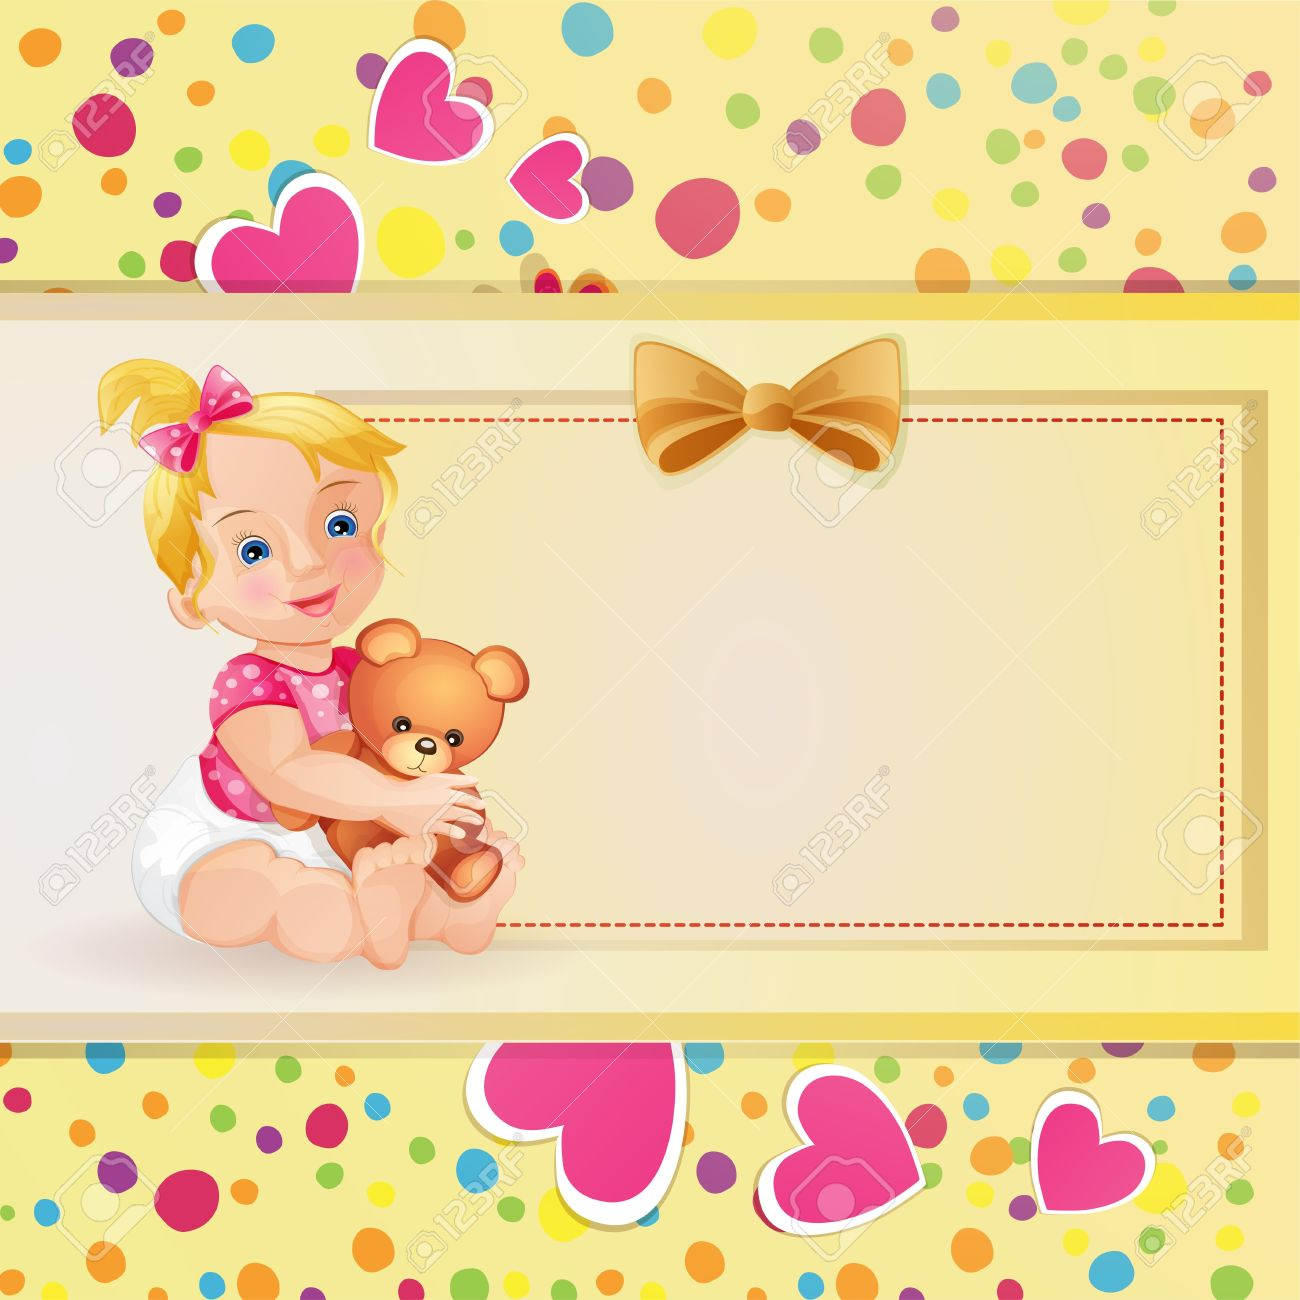 baby shower card with cute baby girl royalty free cliparts vectors